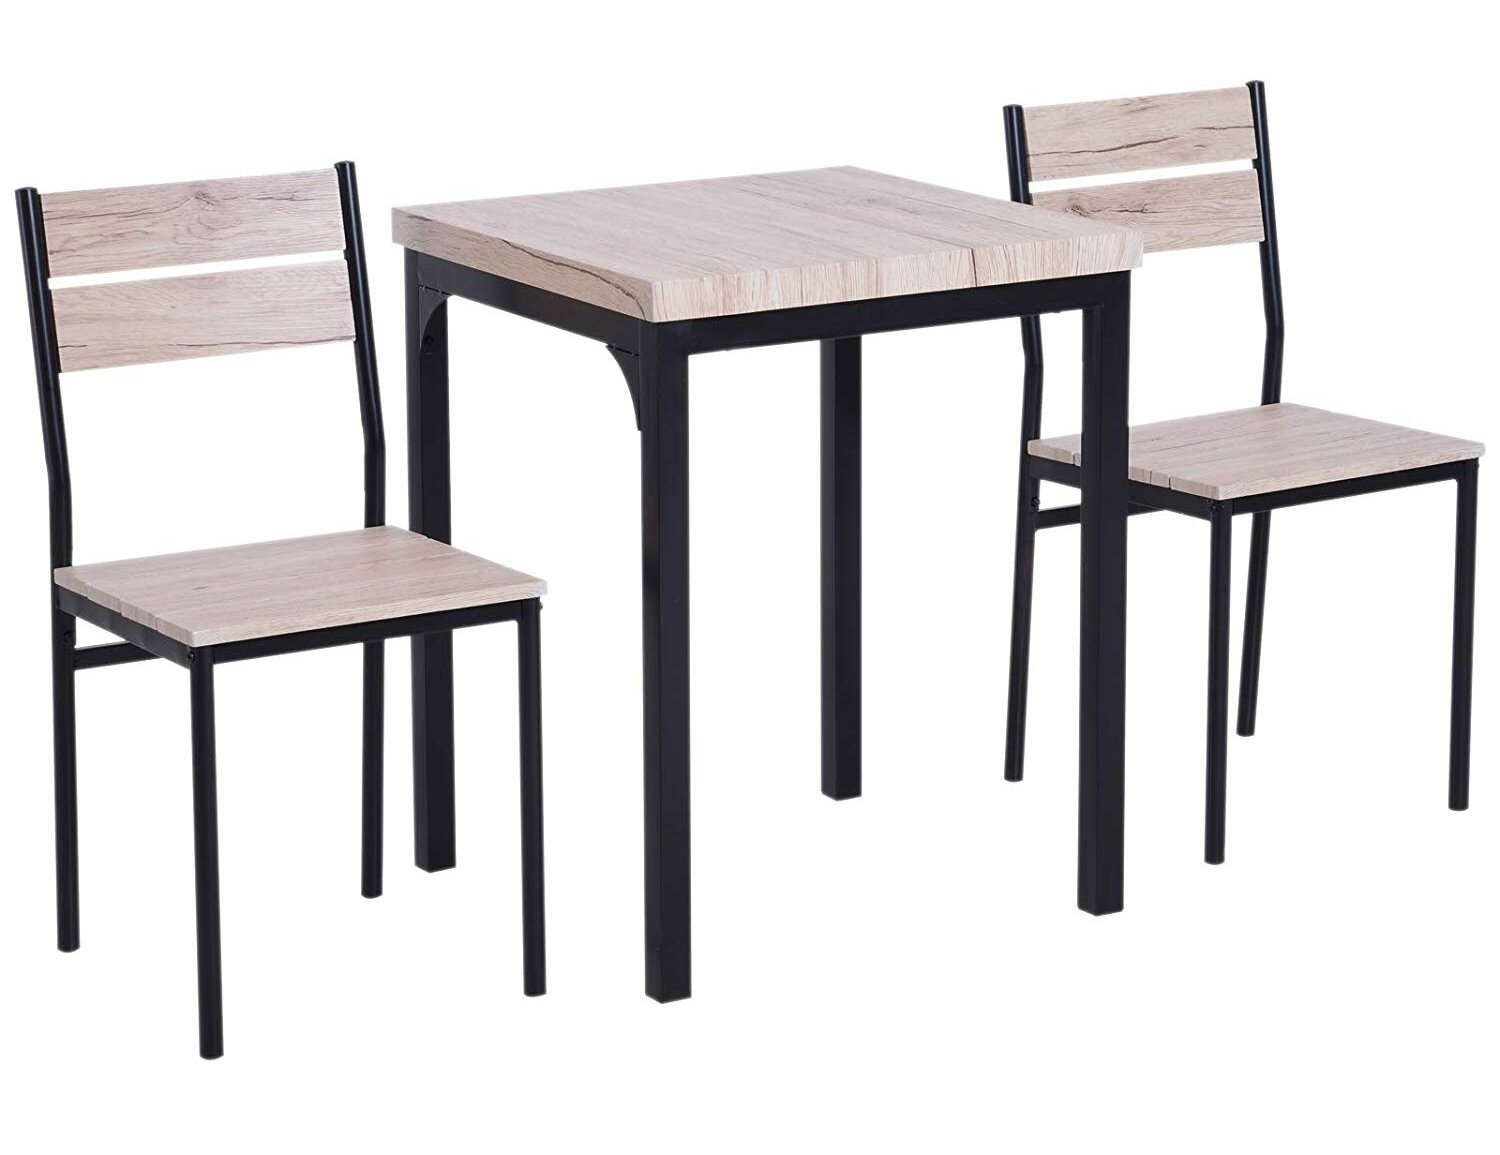 Well Liked Gracie Oaks Staley Rustic Country 3 Piece Dining Set (#17 of 20)